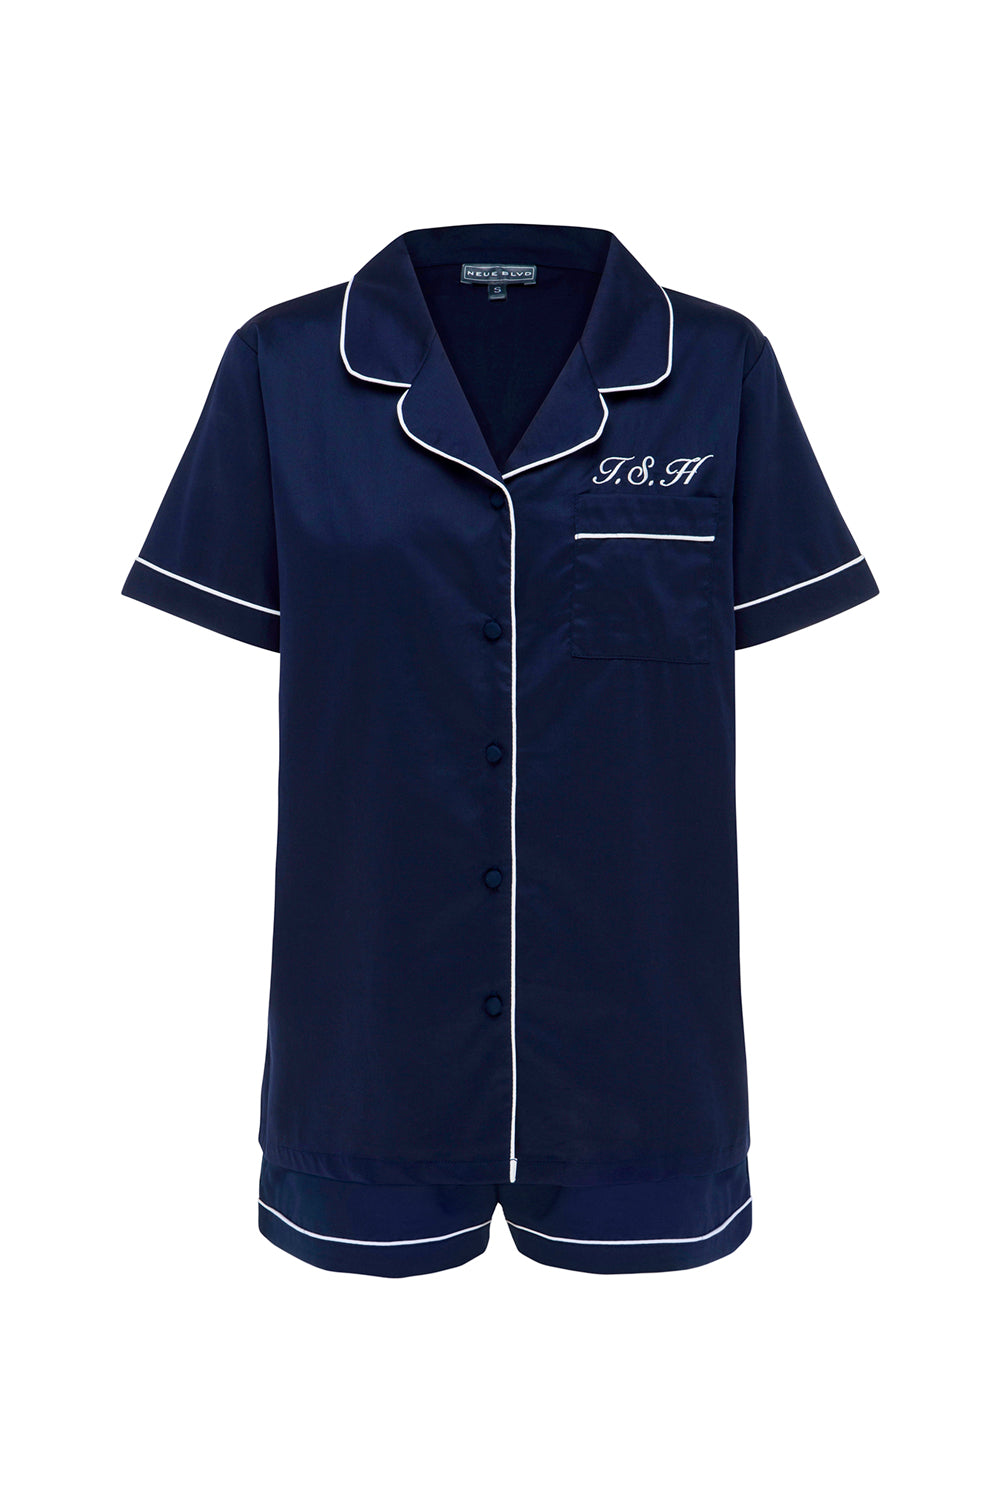 Amour Navy Short Sleeve Set